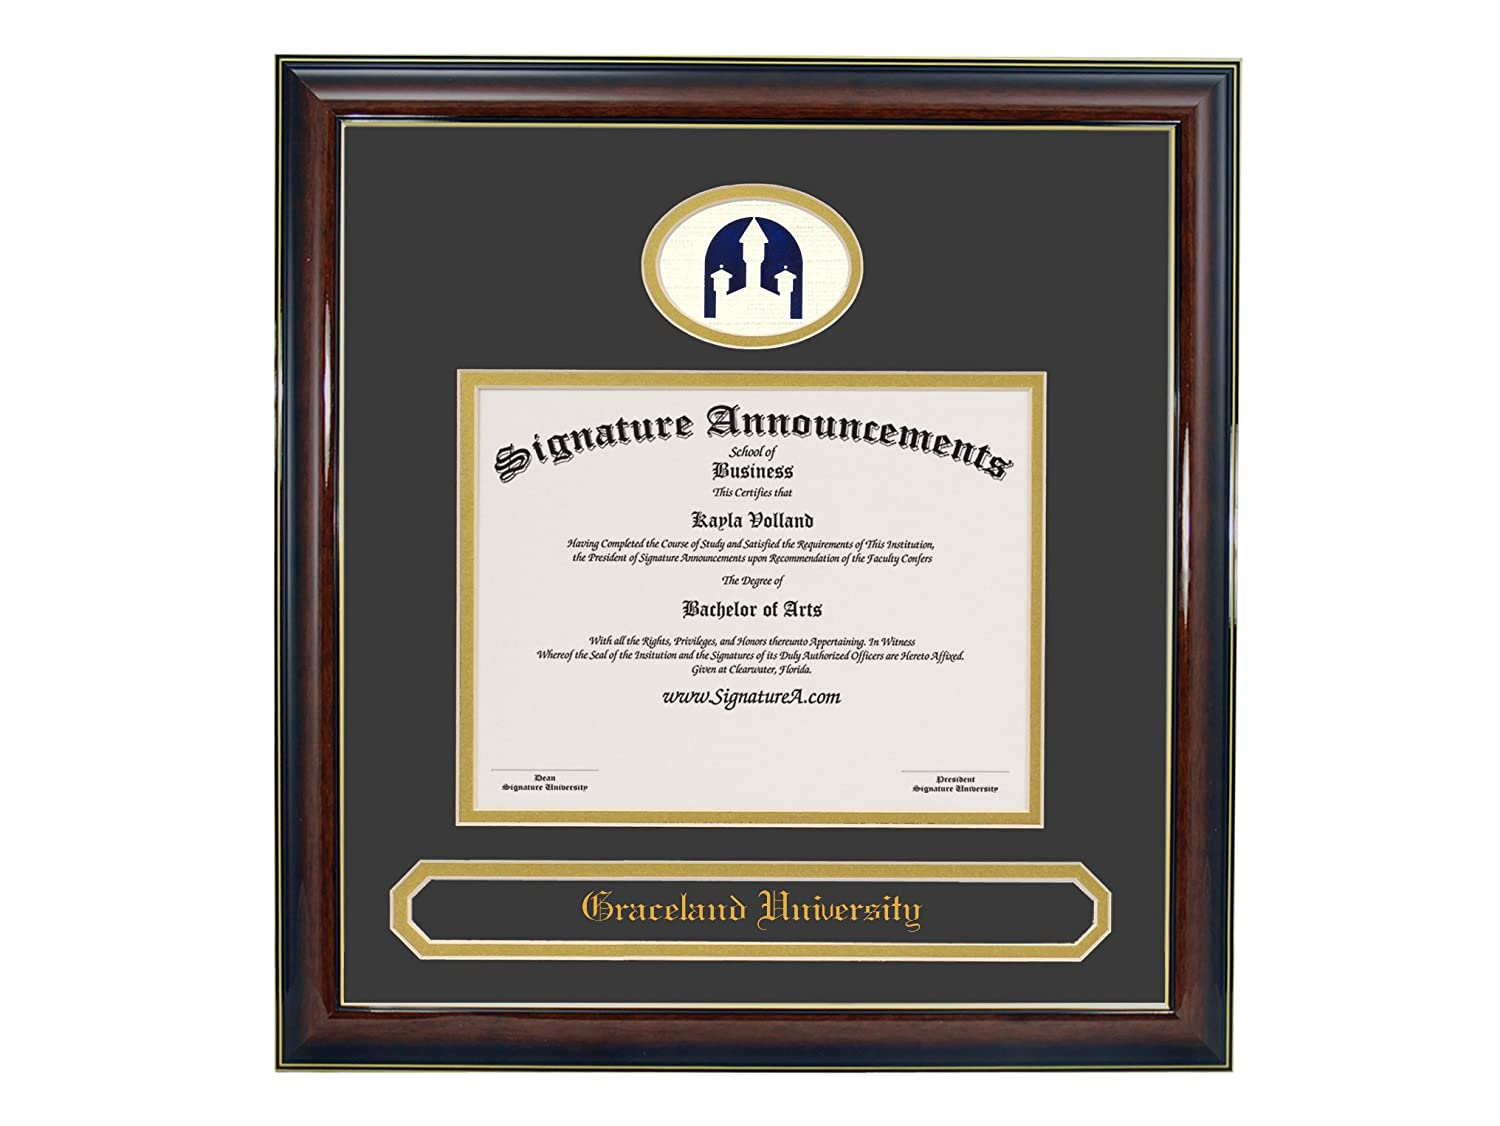 Professional//Doctor Sculpted Foil Seal /& Name Graduation Diploma Frame 16 x 16 Gold Accent Gloss Mahogany Signature Announcements Graceland-University Undergraduate